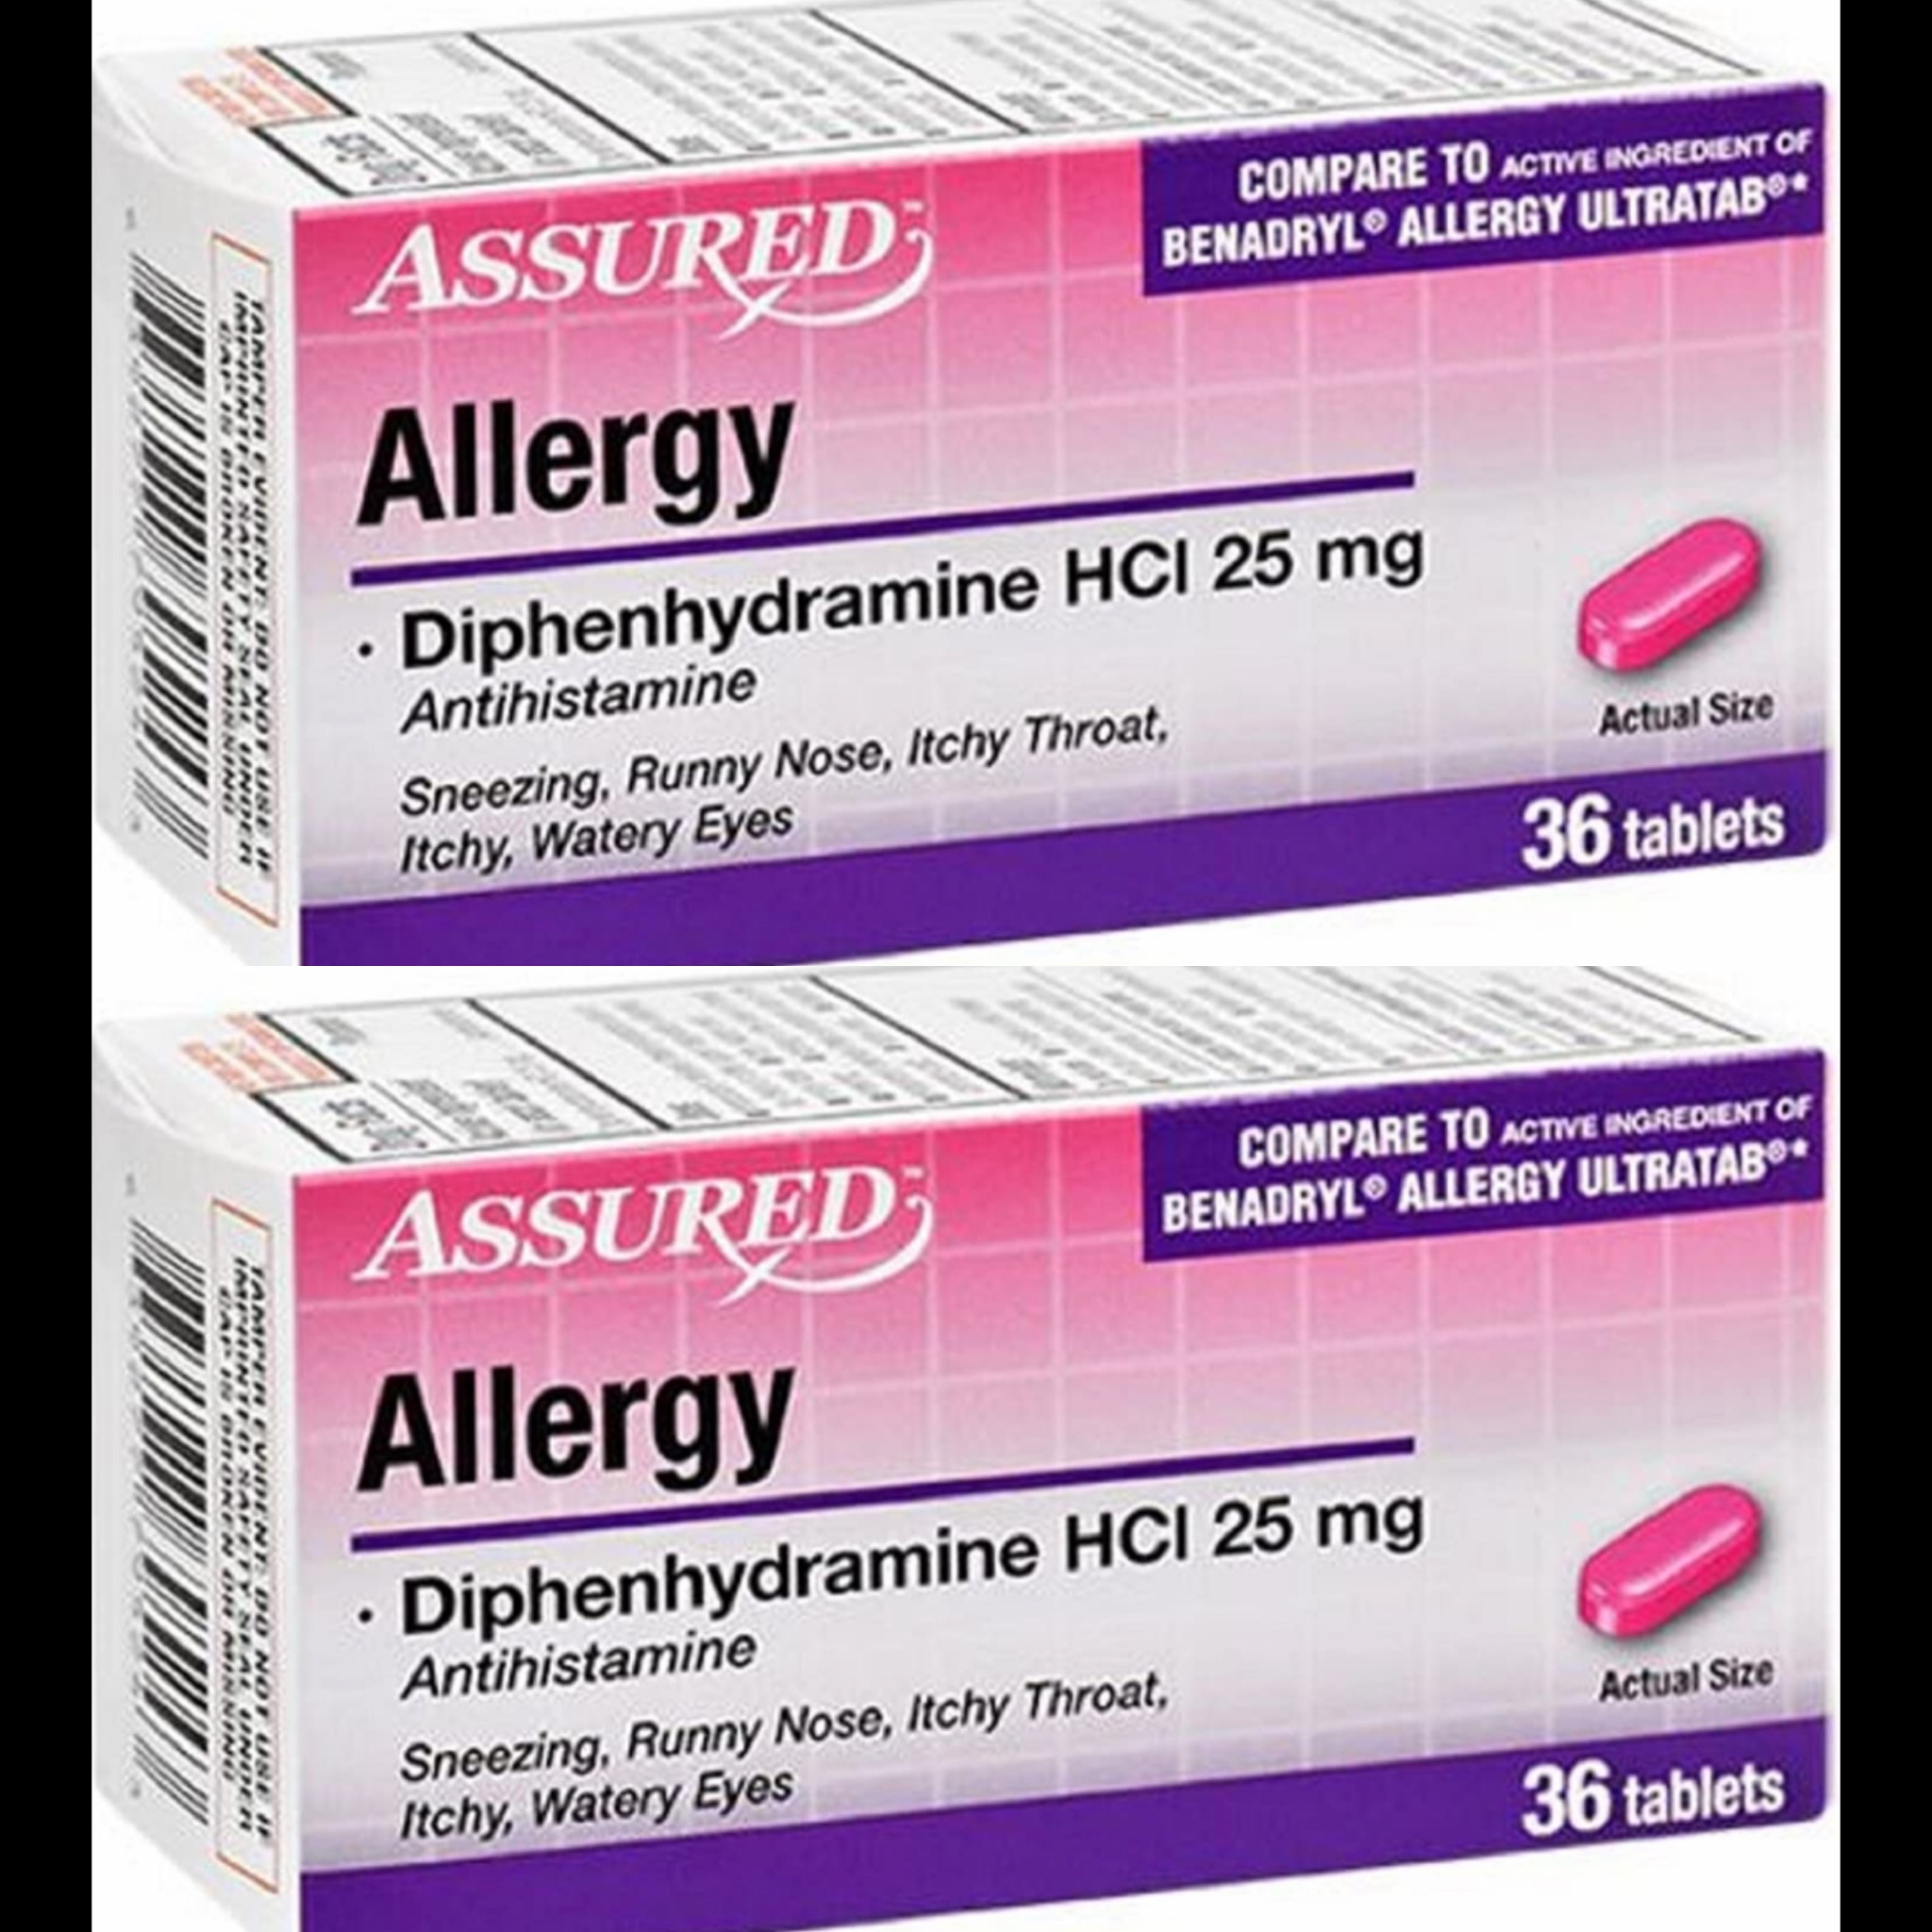 2 Lots Assured Allergy Diphenhydramine HCl 25 mg ...